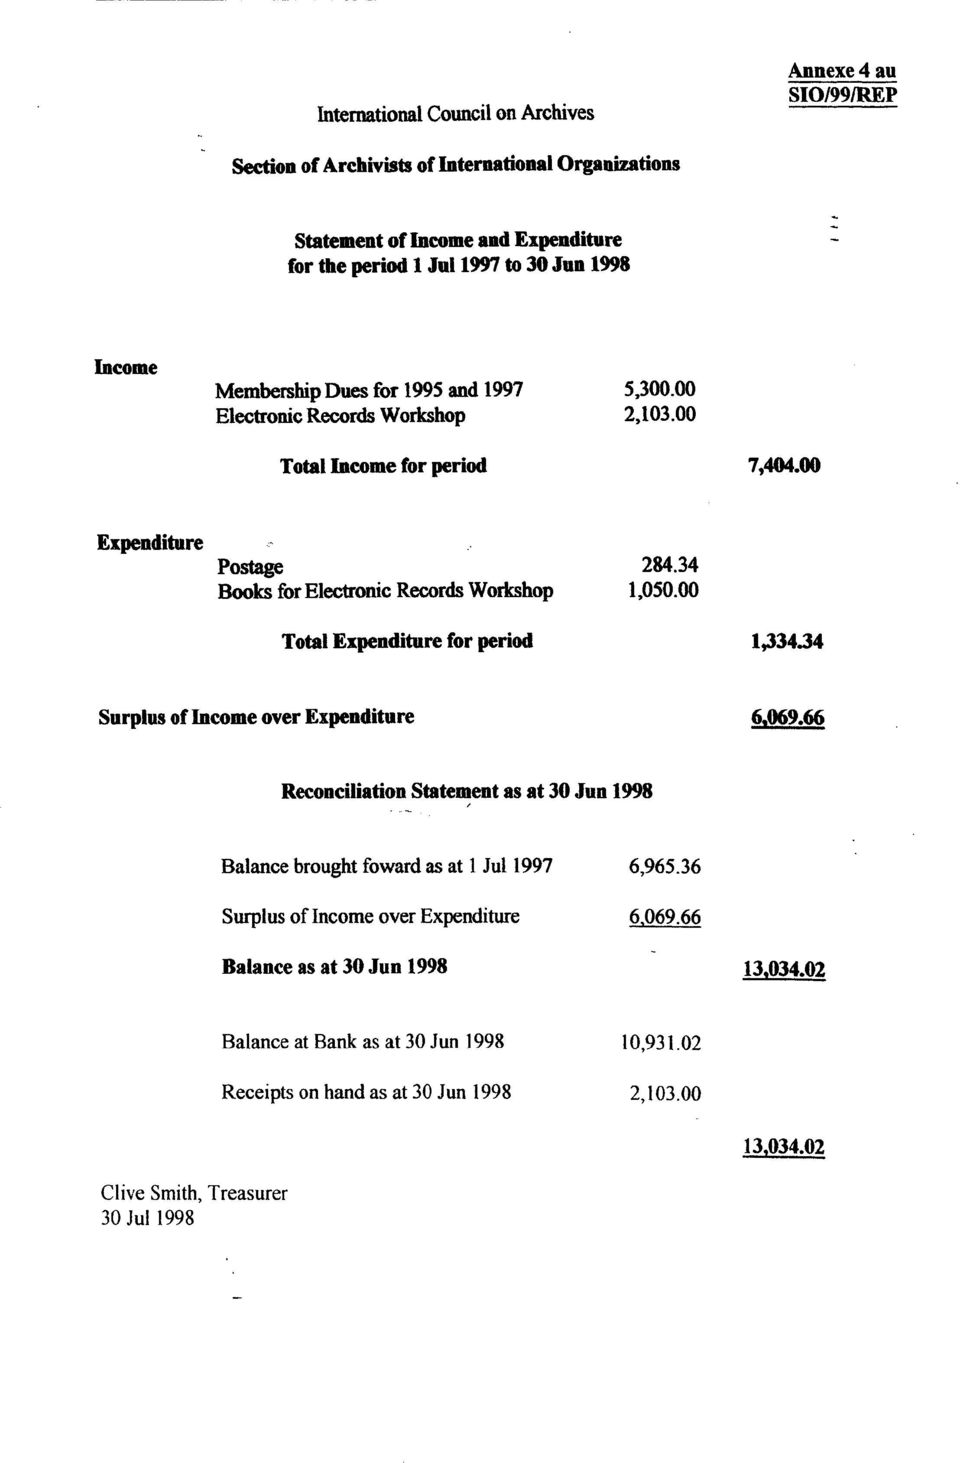 OO Total Expenditure for period 1334.34 Surplus of Income over Expenditure 6369.66 Reconciliation Statement as at 30 Jun 1998 Balance brought foward as at 1 Jul 1997 6,965.